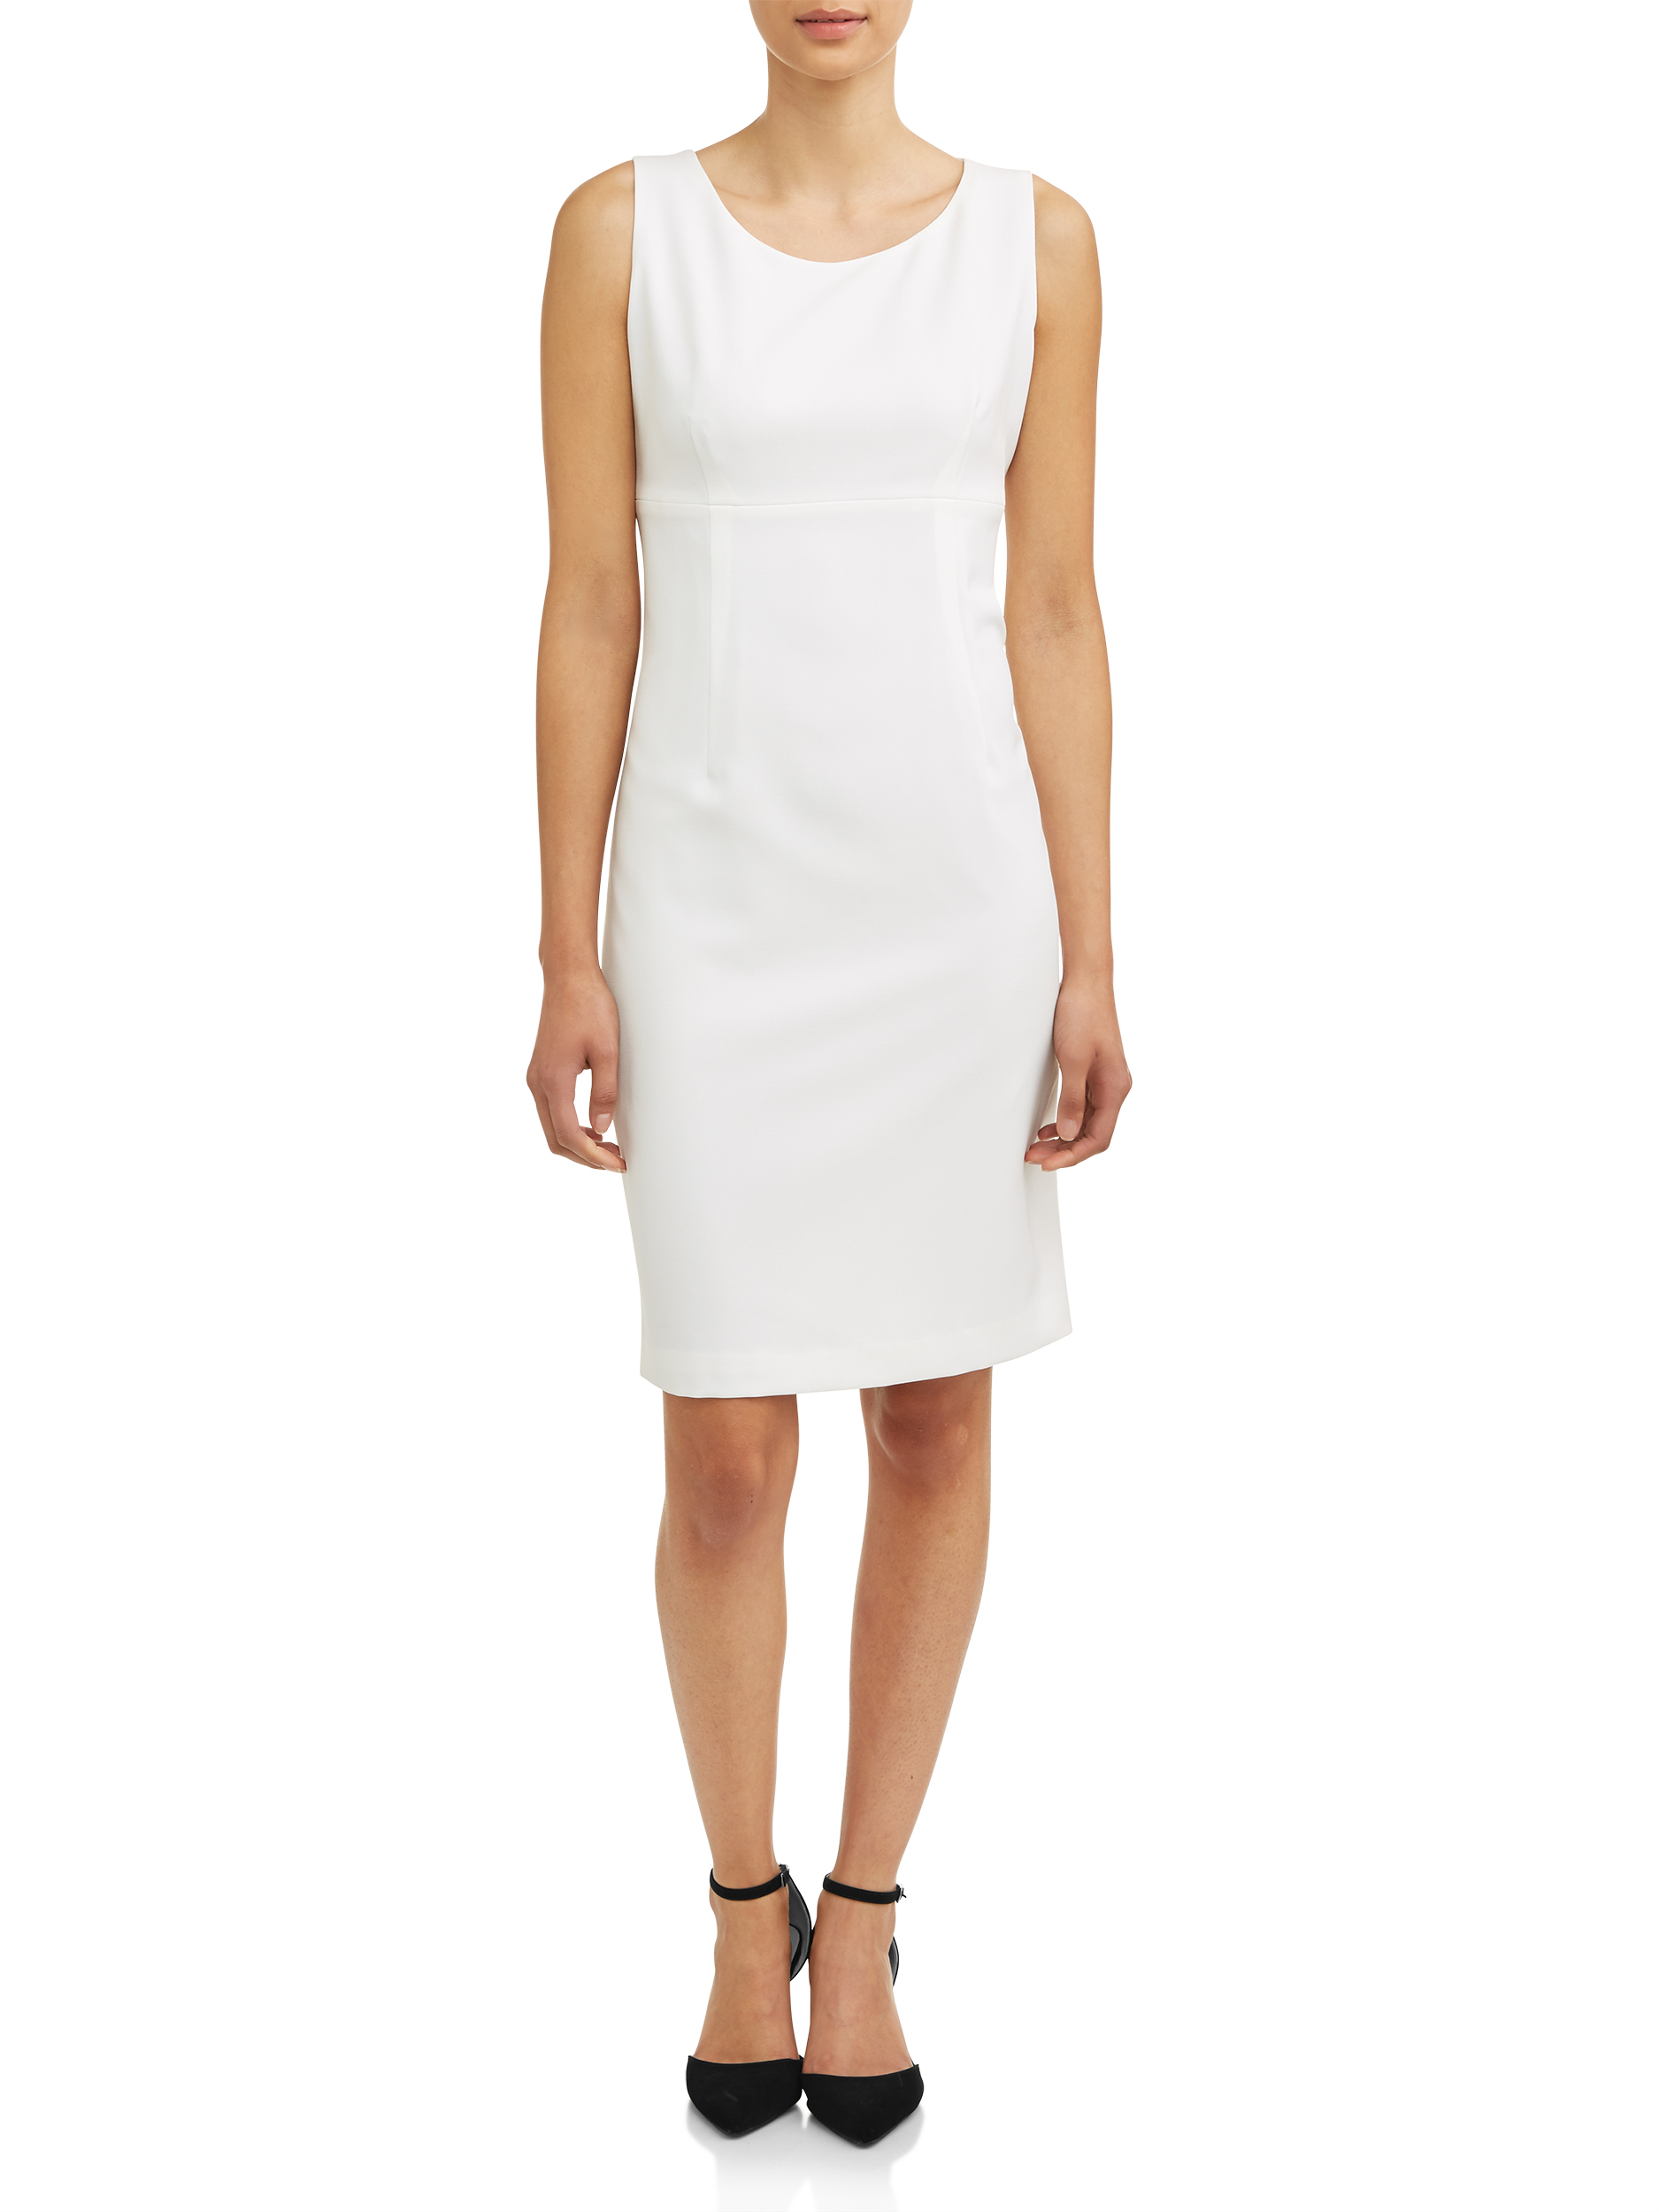 Women's Light Sheath Crepe Dress